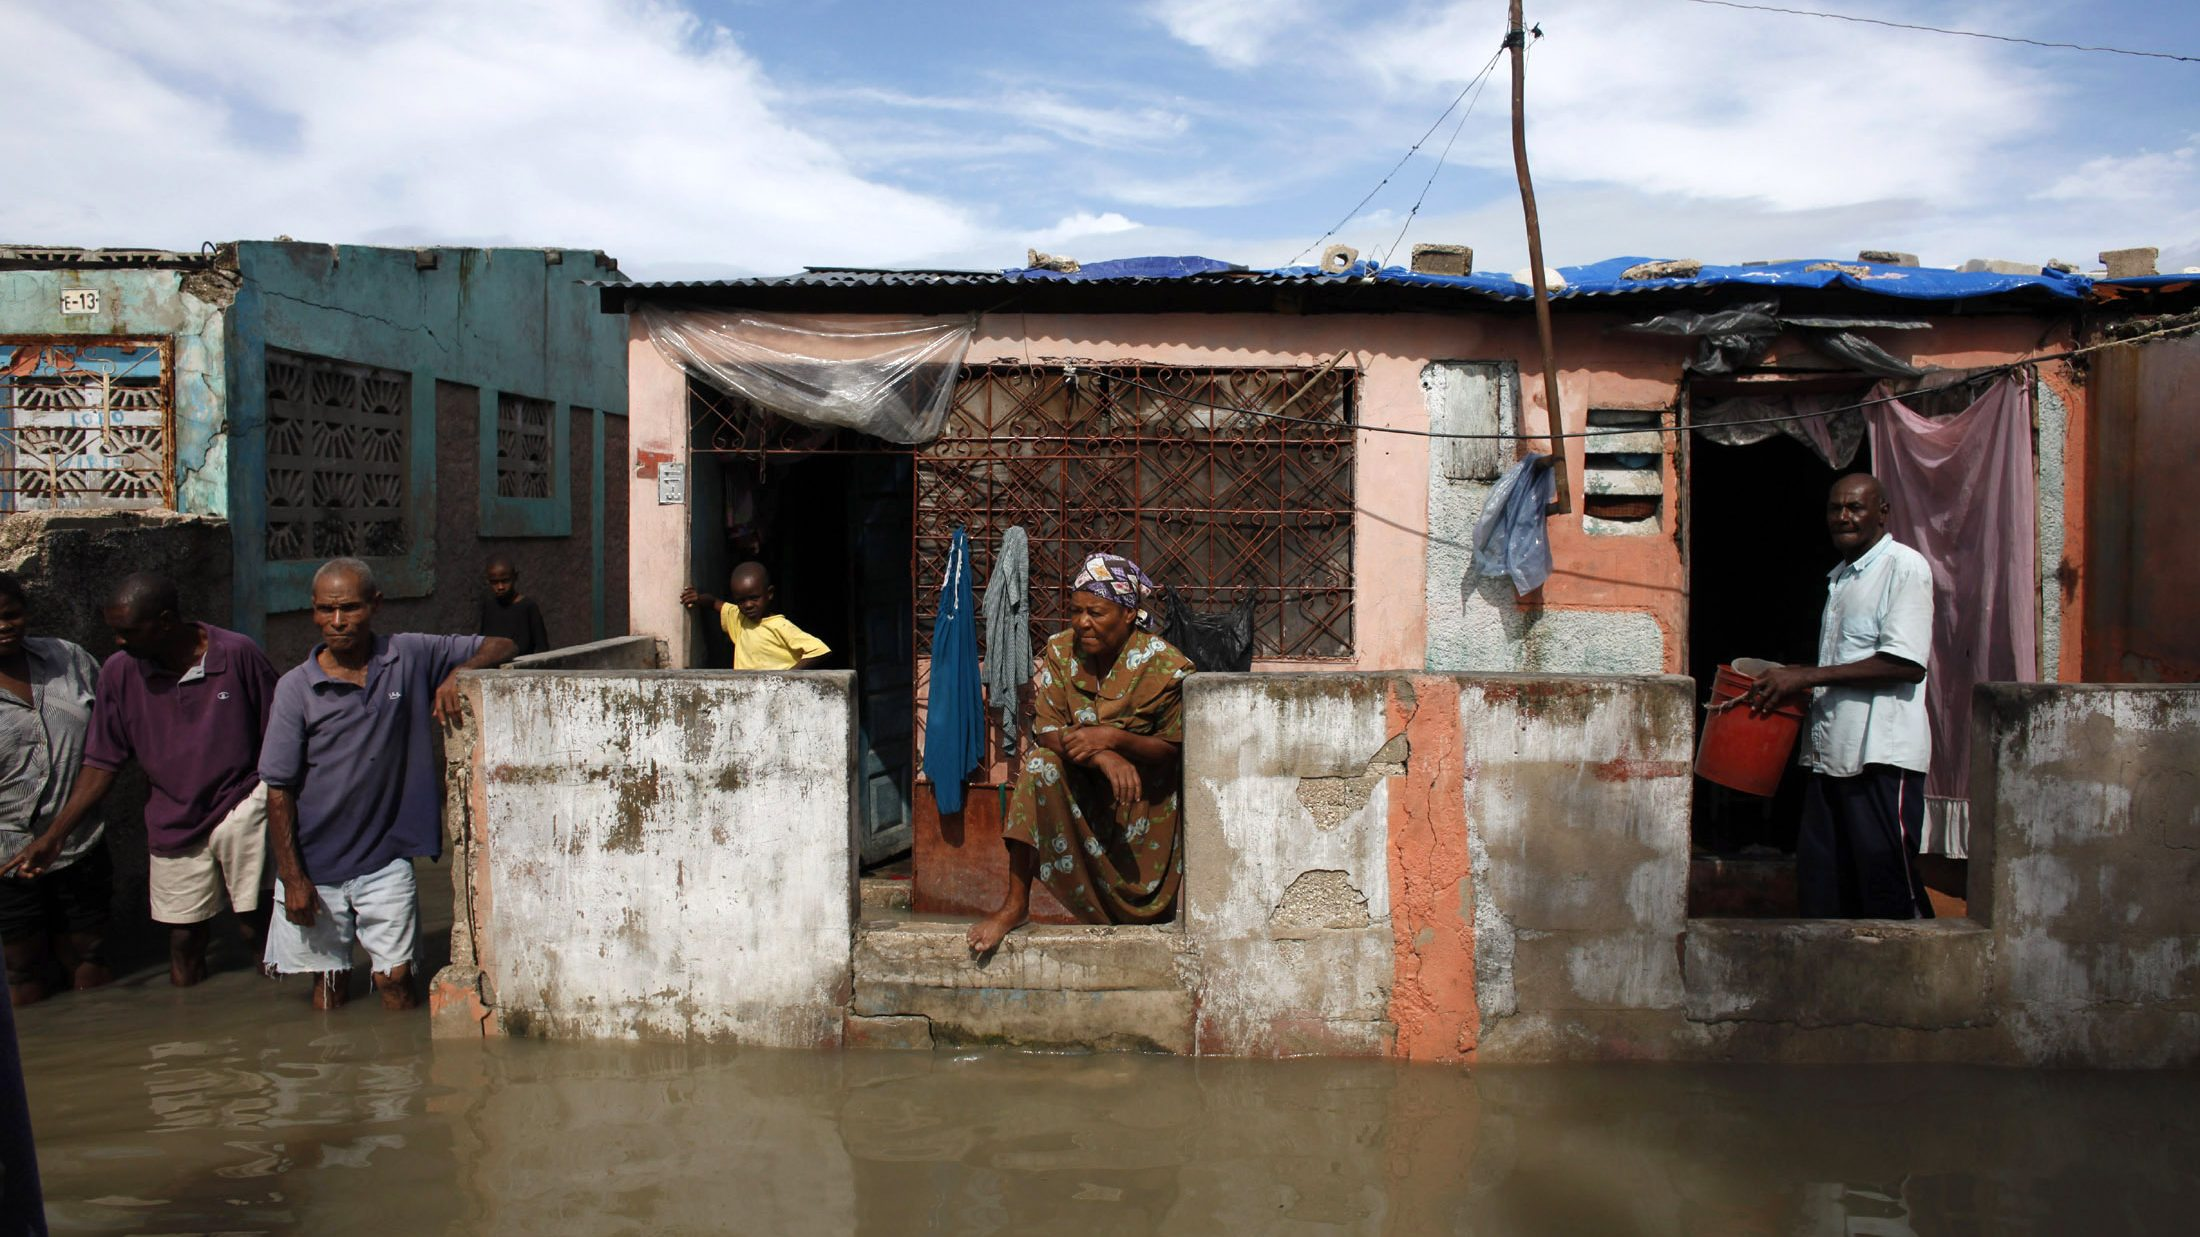 Haitians wait for help after a drain flooded their neighborhood of Cite-Soleil in Port-au-Prince November 6, 2010. Hurricane Tomas soaked Haiti's crowded earthquake survivors' camps and swamped coastal towns on Friday, triggering flooding and mudslides that killed at least seven people.